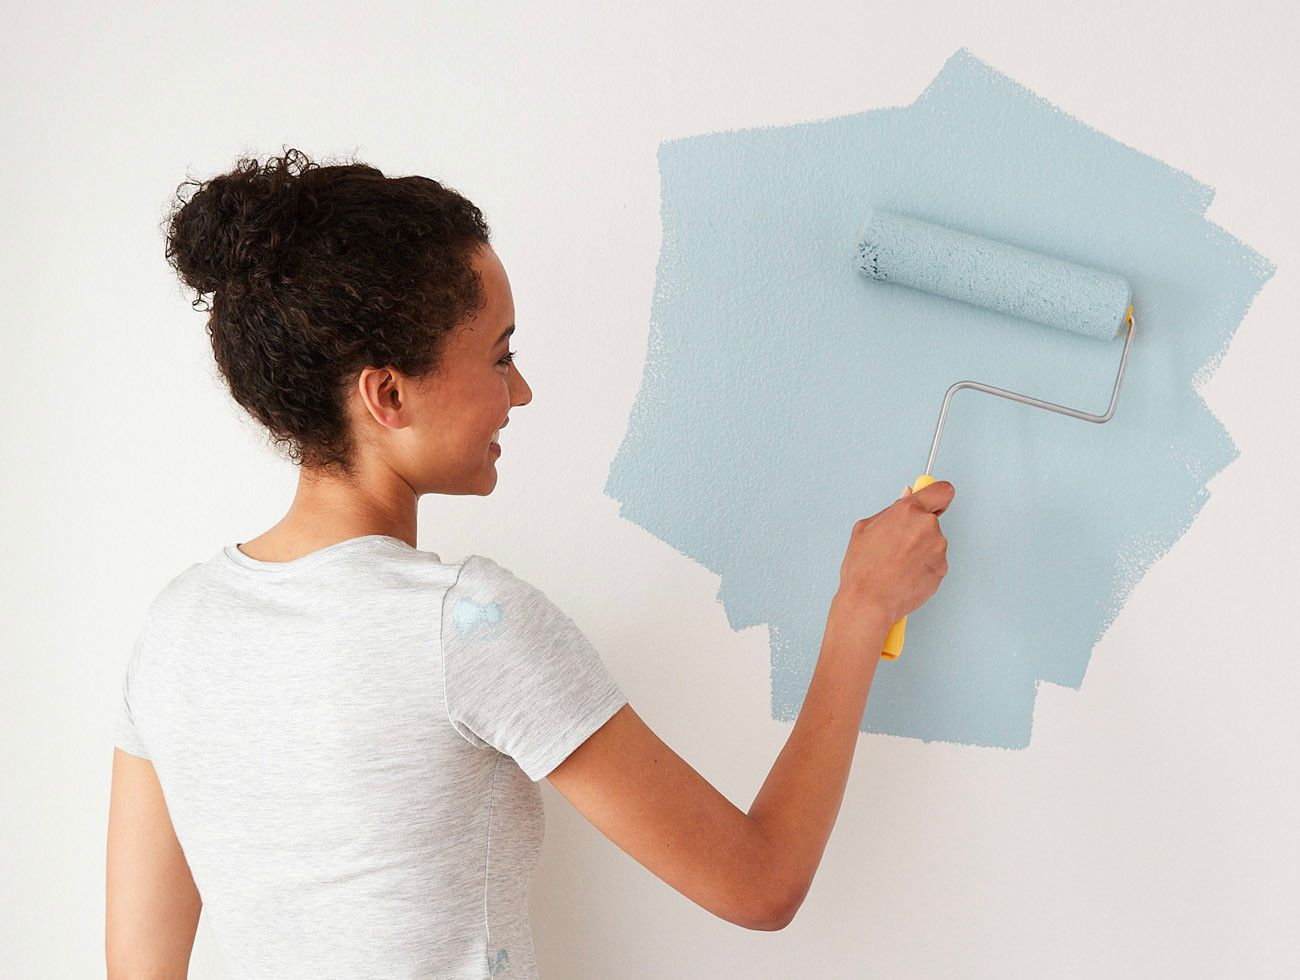 A woman smiling and painting a wall with blue paint using a roller.